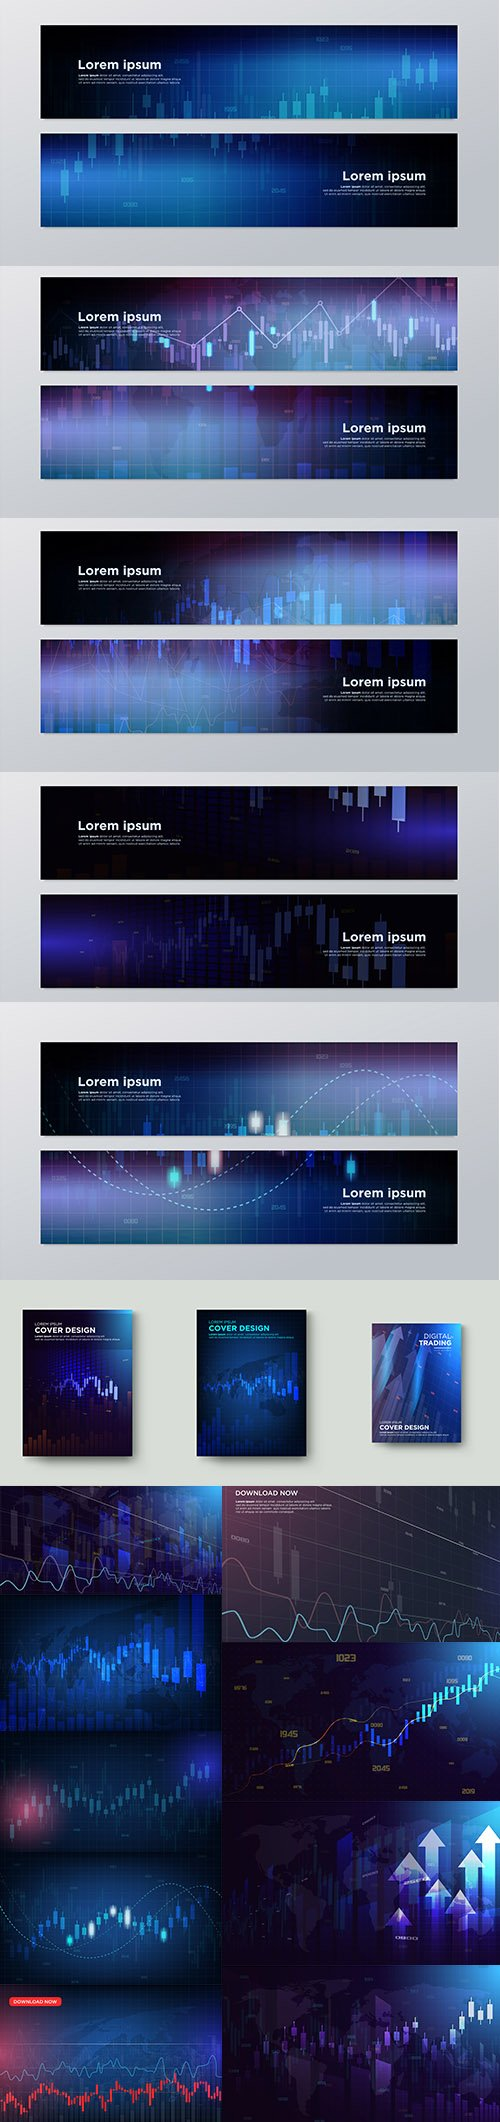 Trading Banners and Backgrounds Premium Set